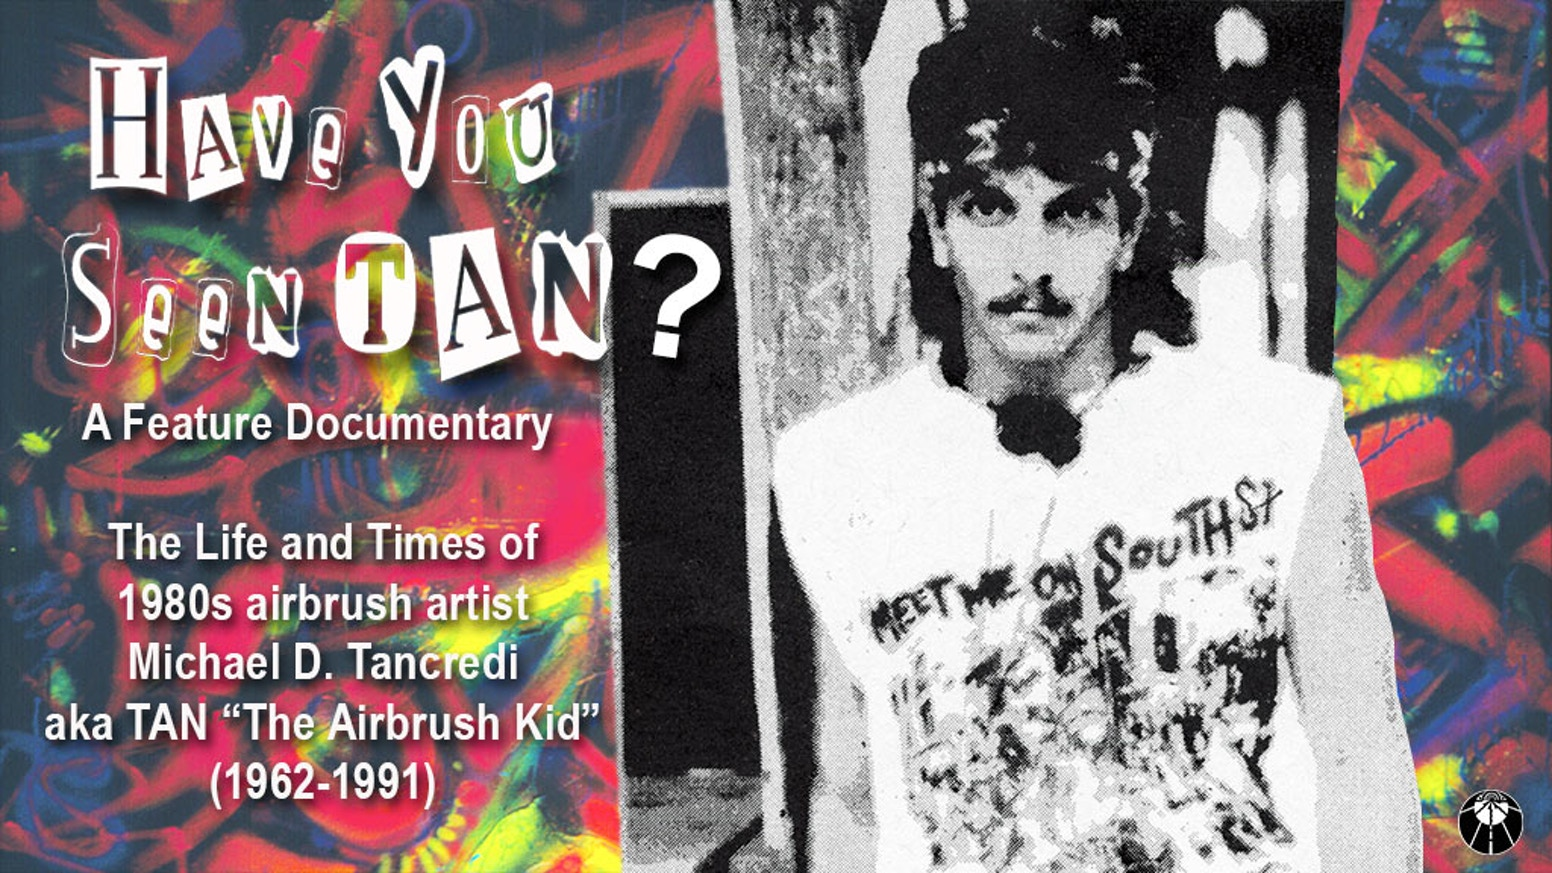 Have You Seen TAN? - Documentary Film by Douglas Branson